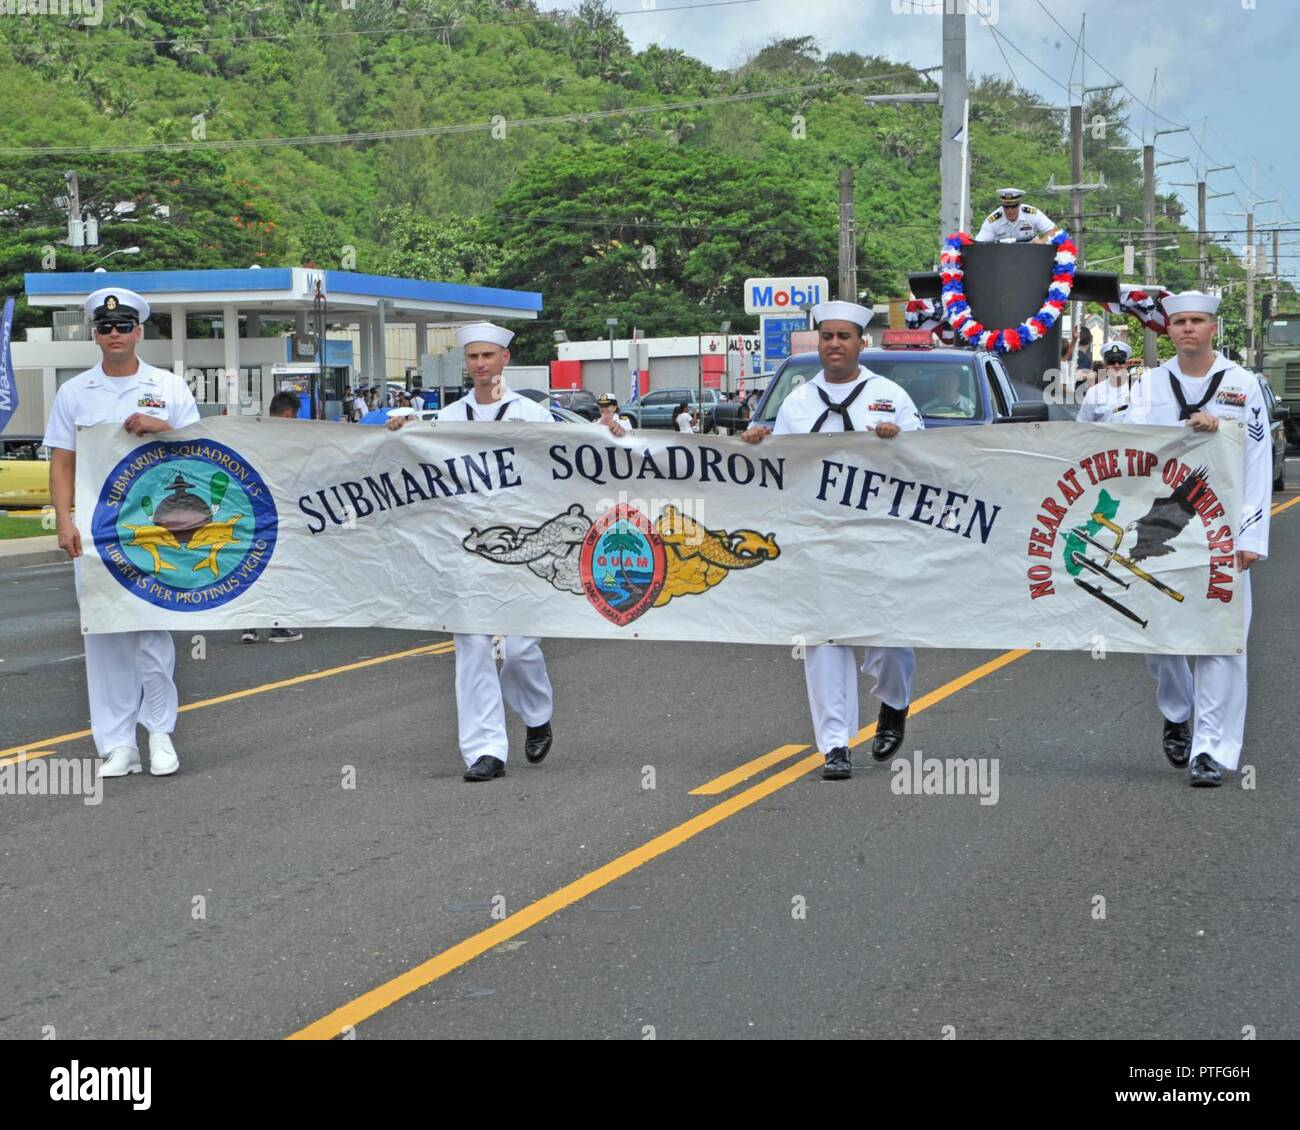 Guam (July 21, 2017) Sailors from Commander, Submarine Squadron 15 carry a banner during Guam's annual Liberation Day Parade in Hagatna, Guam, July 21. The 2017 Guam Liberation Parade celebrates the 73rd anniversary of the liberation of Guam from Japanese occupation by U.S. forces during World War II. - Stock Image